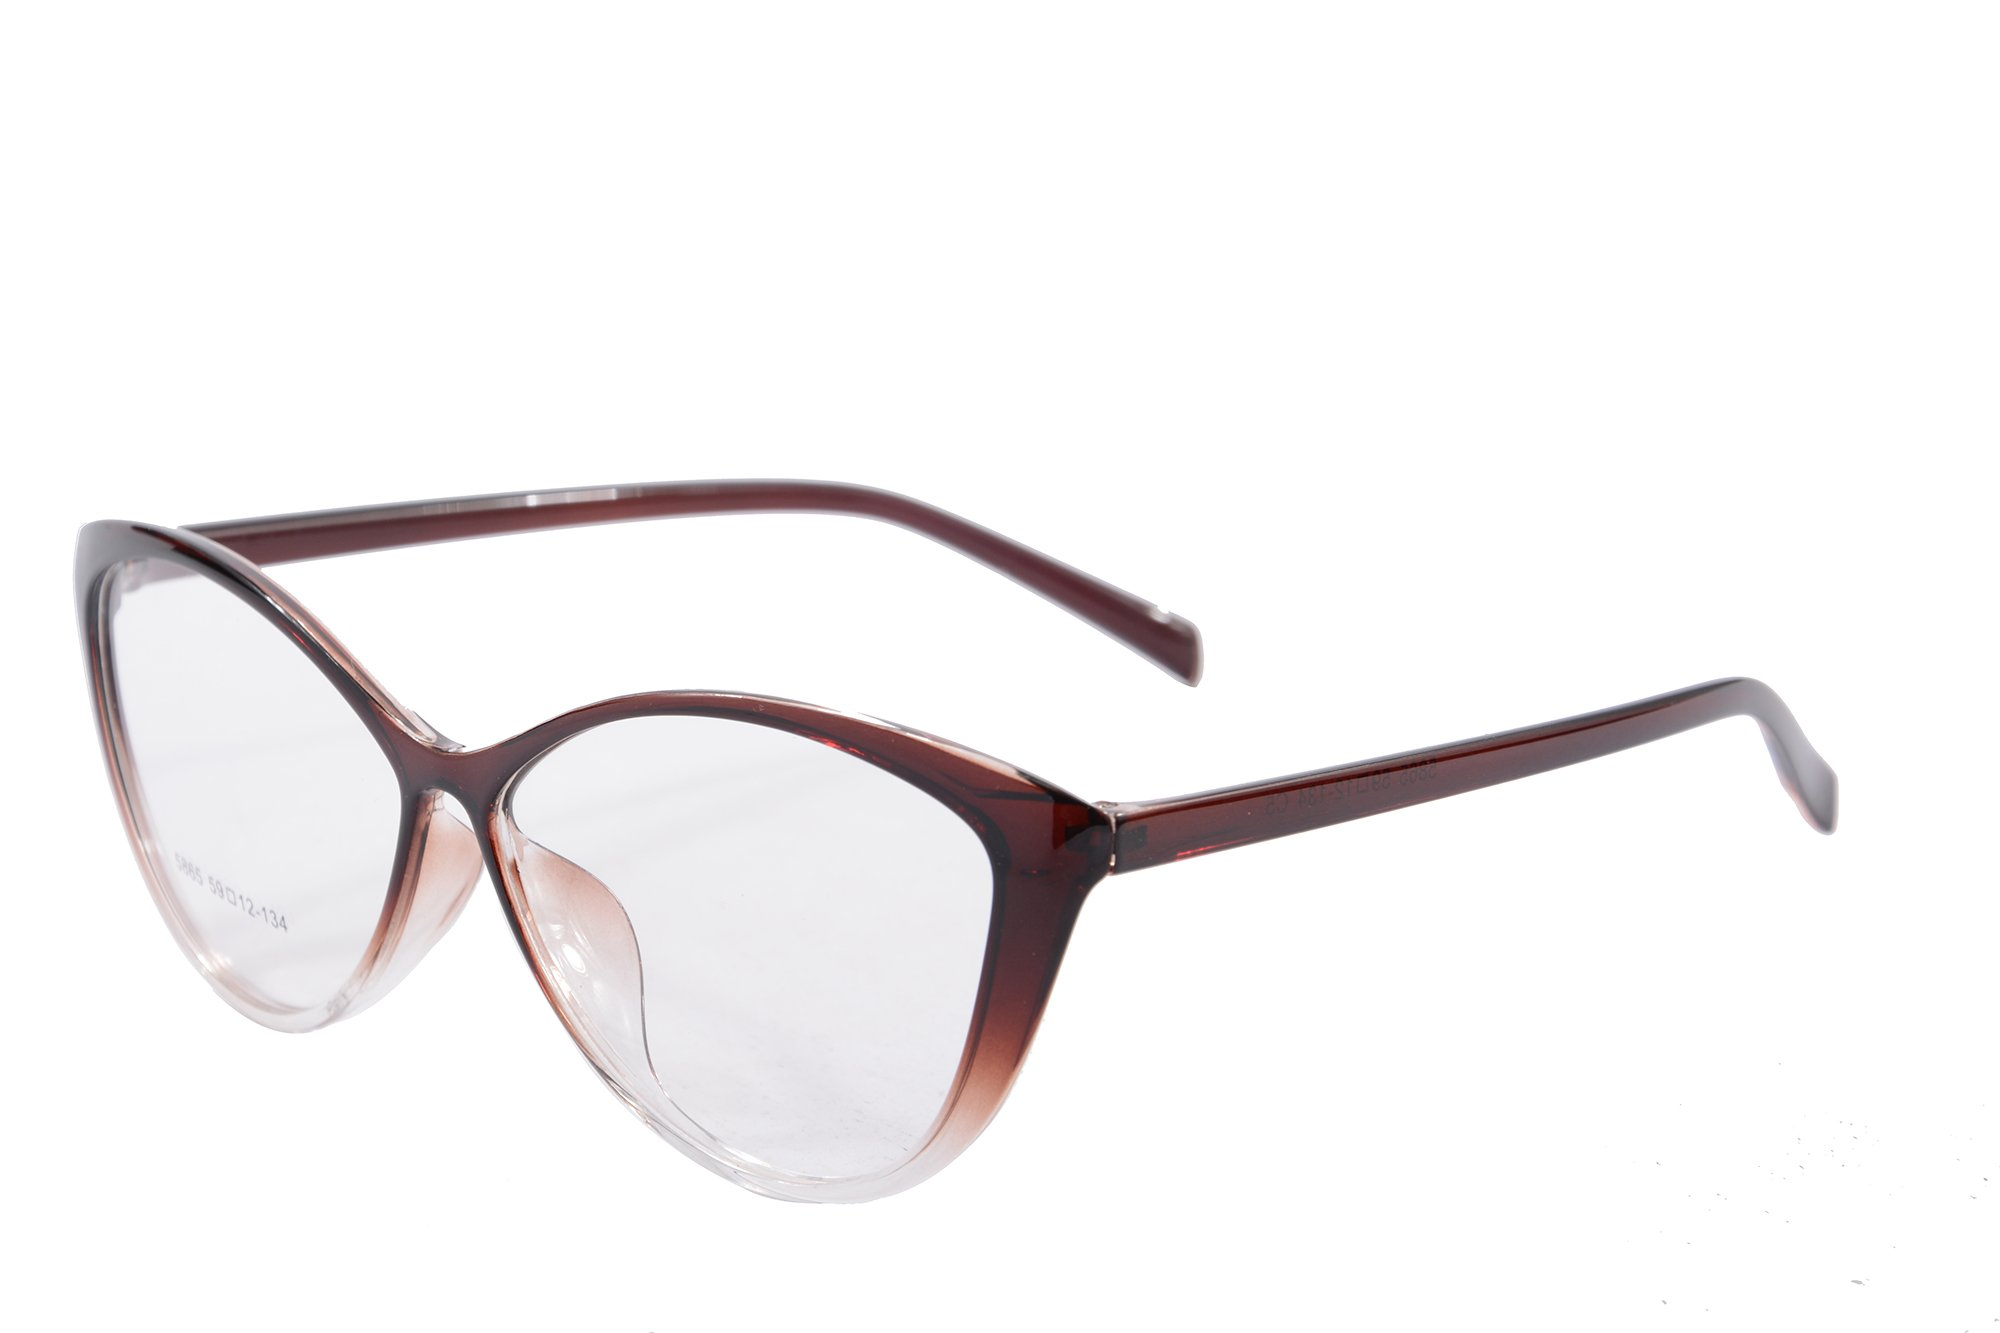 Ladies Cateye Glasses Frames Blue Blocking Clear Lens Computer Reading Glasses-5865(brown,anti blue light)